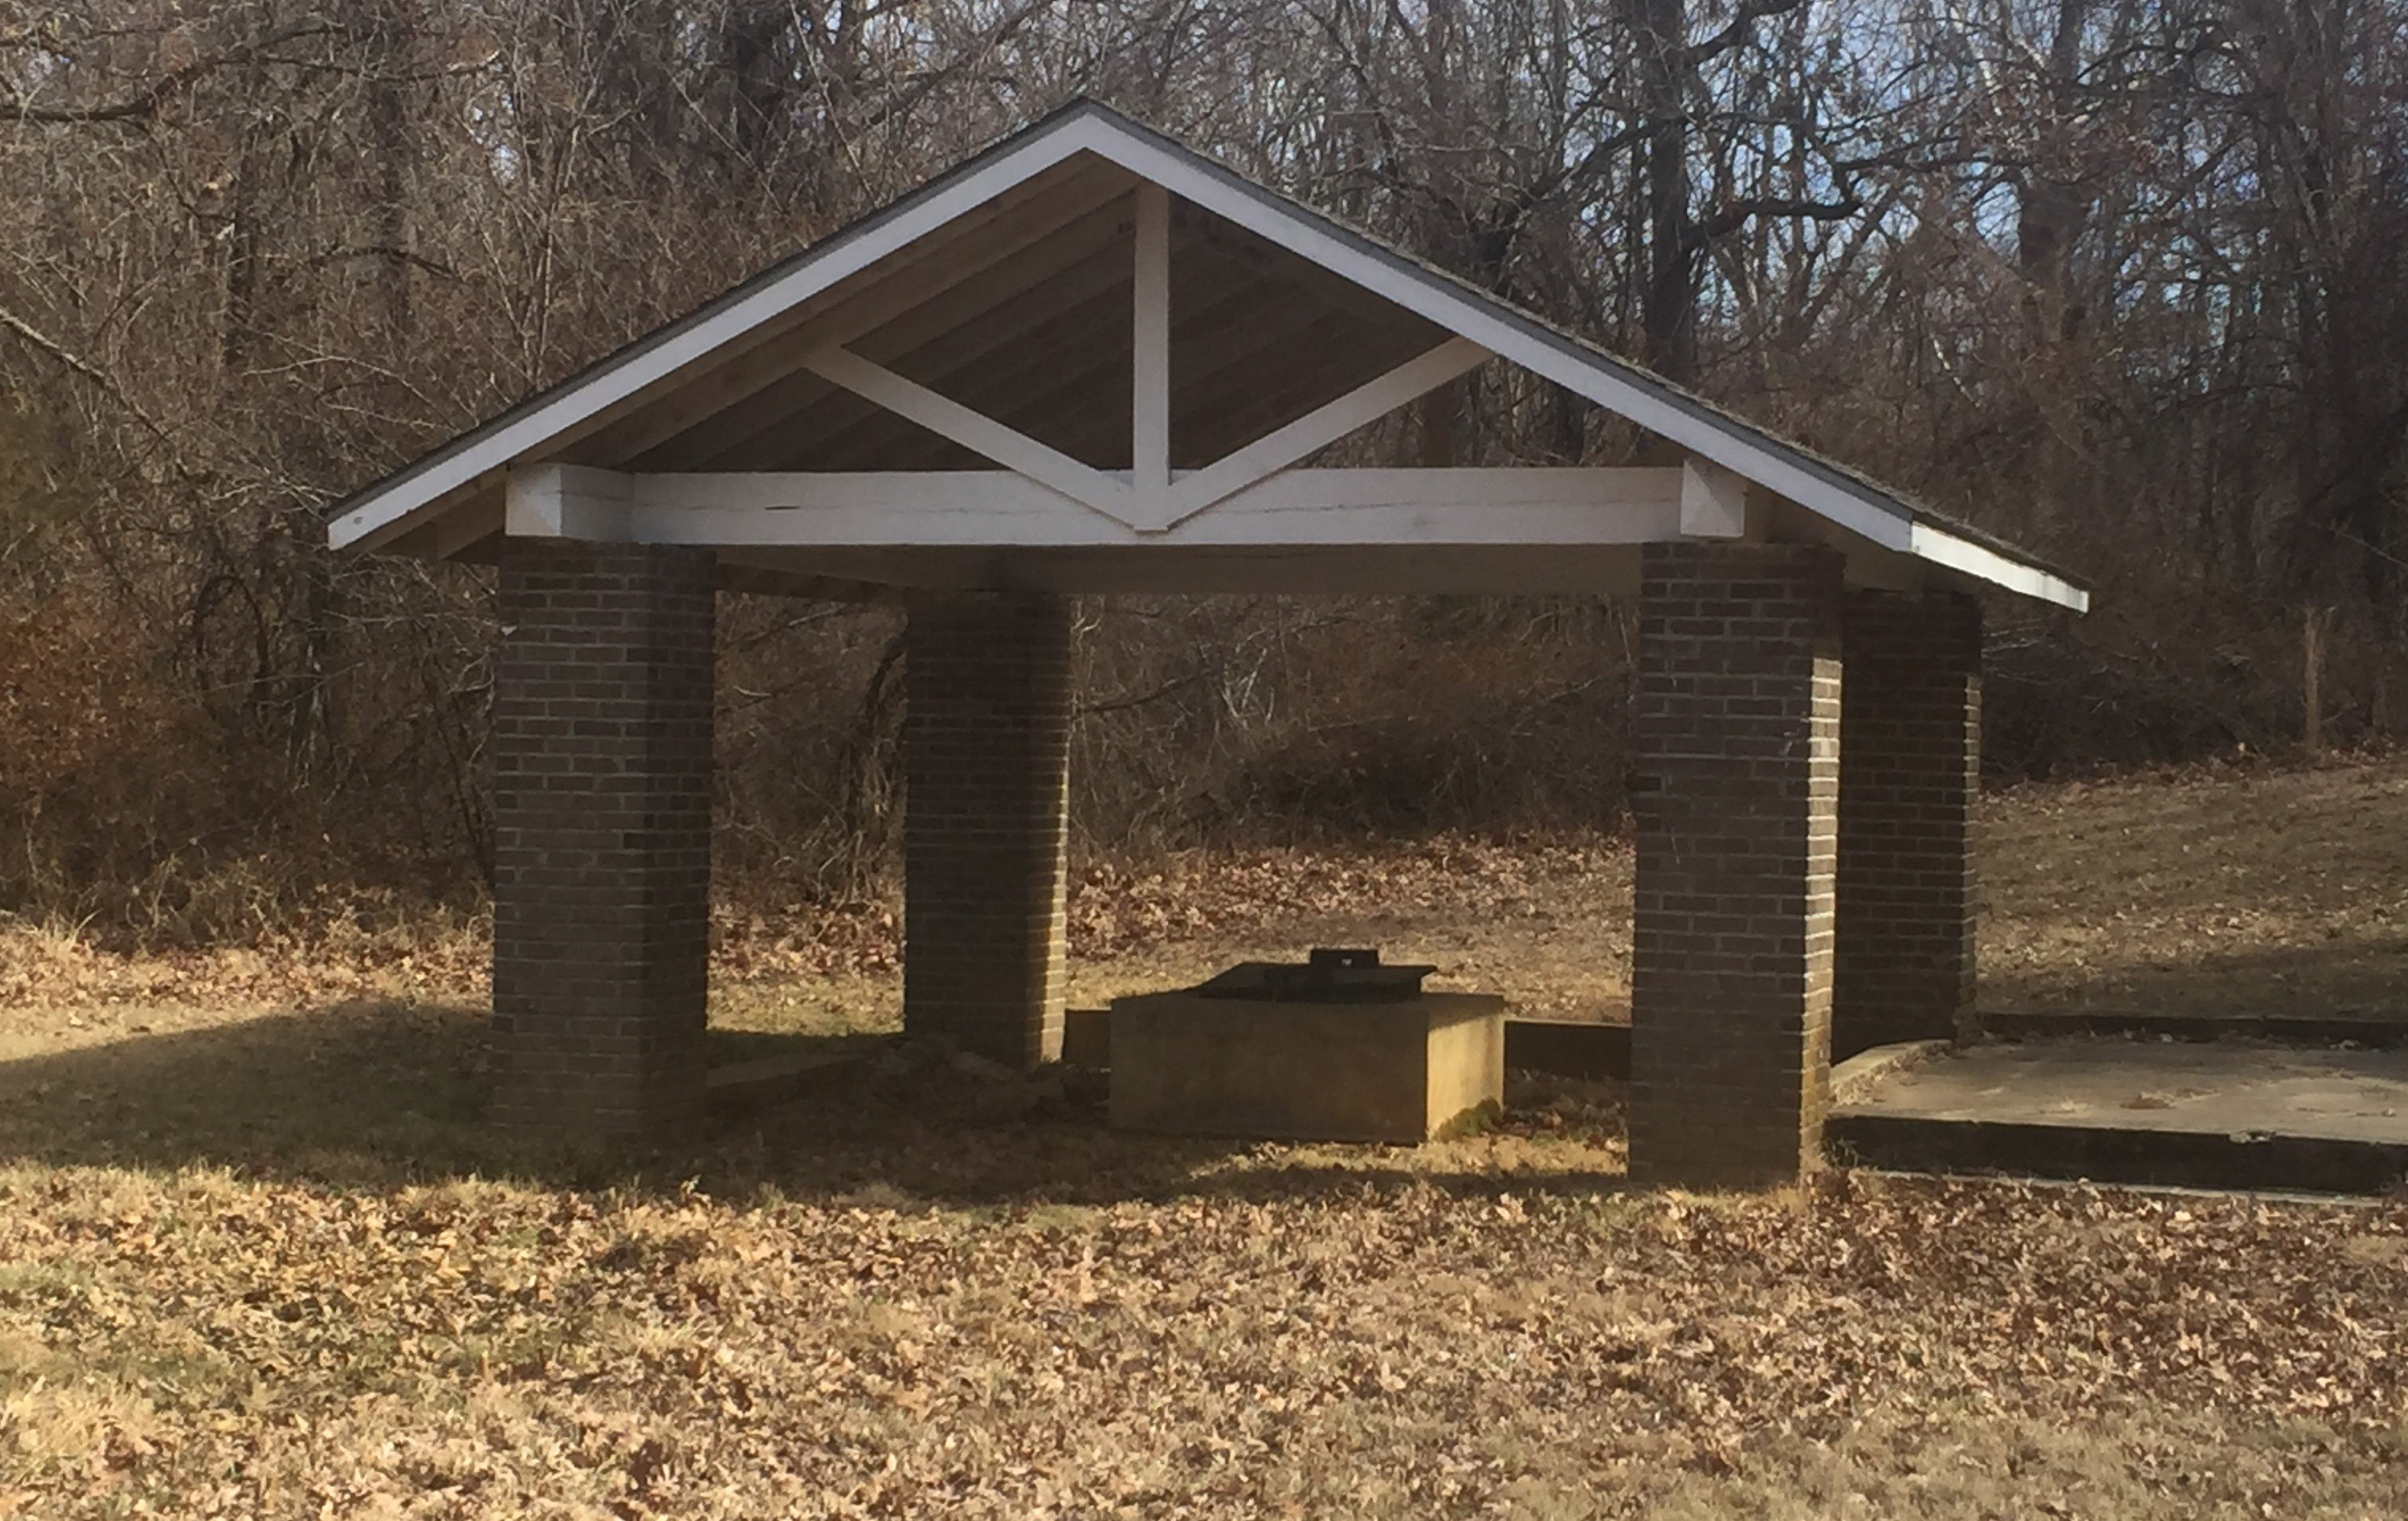 The mineral spring structure at Pertle Springs today. Photo by Mary Frintz